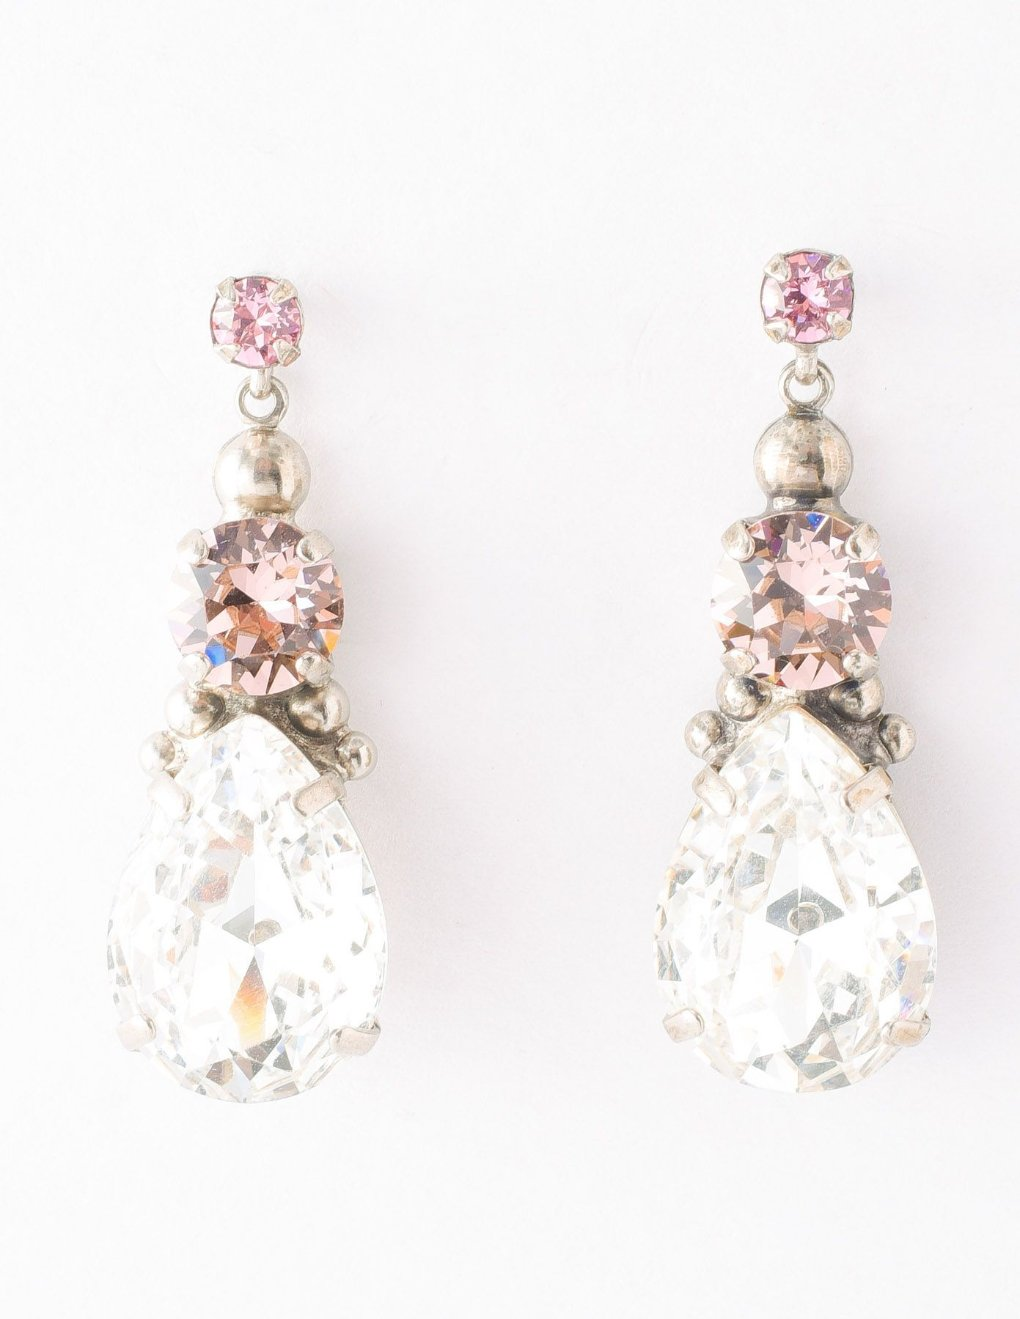 Transcendent Teardrop Earring - Crystal Rose